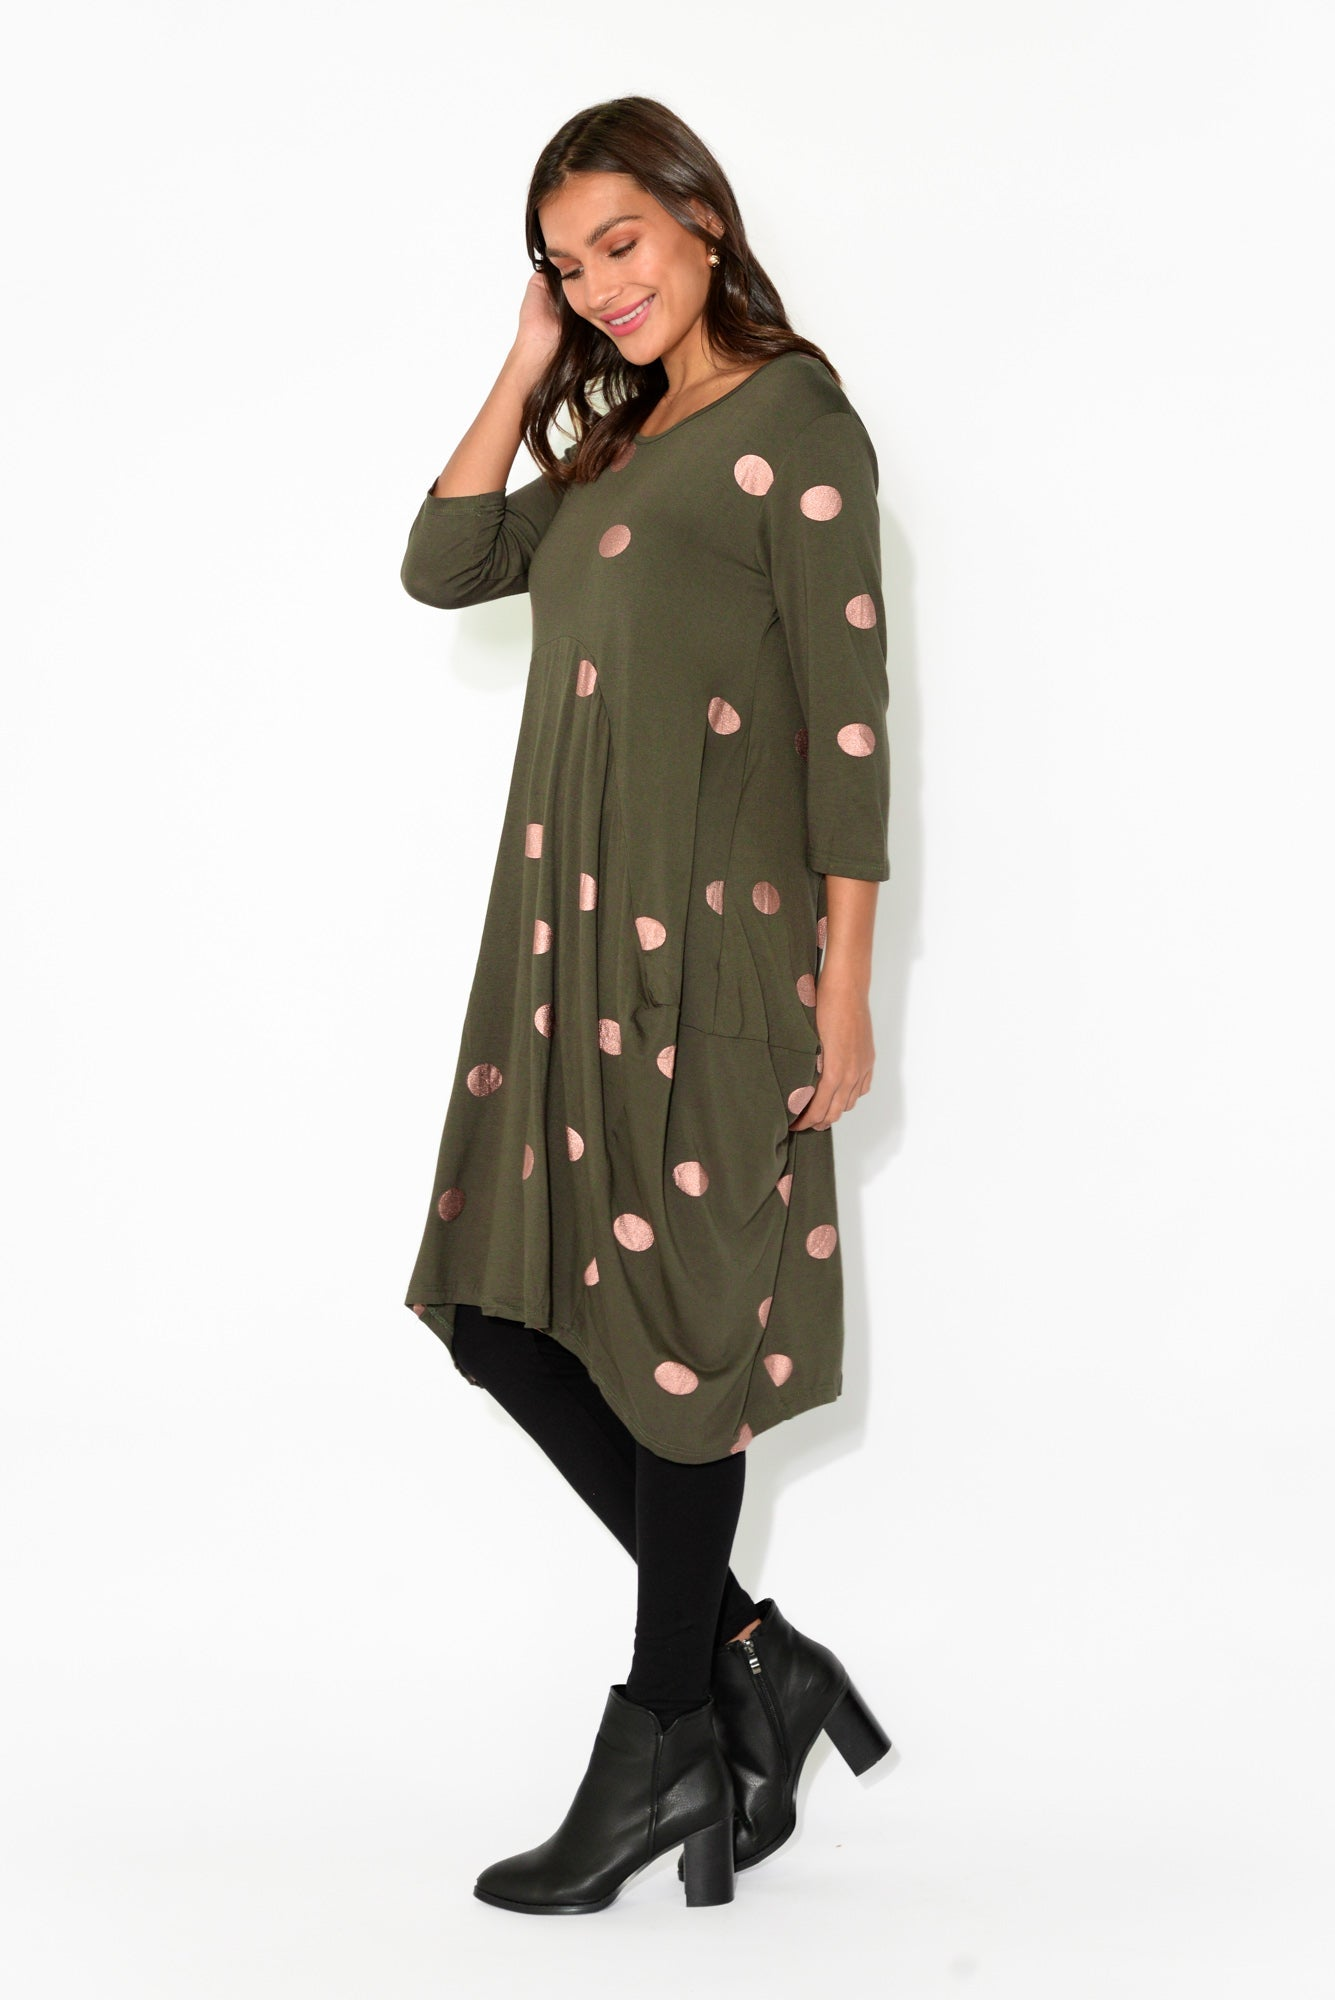 Coco Khaki Spot Sleeved Dress